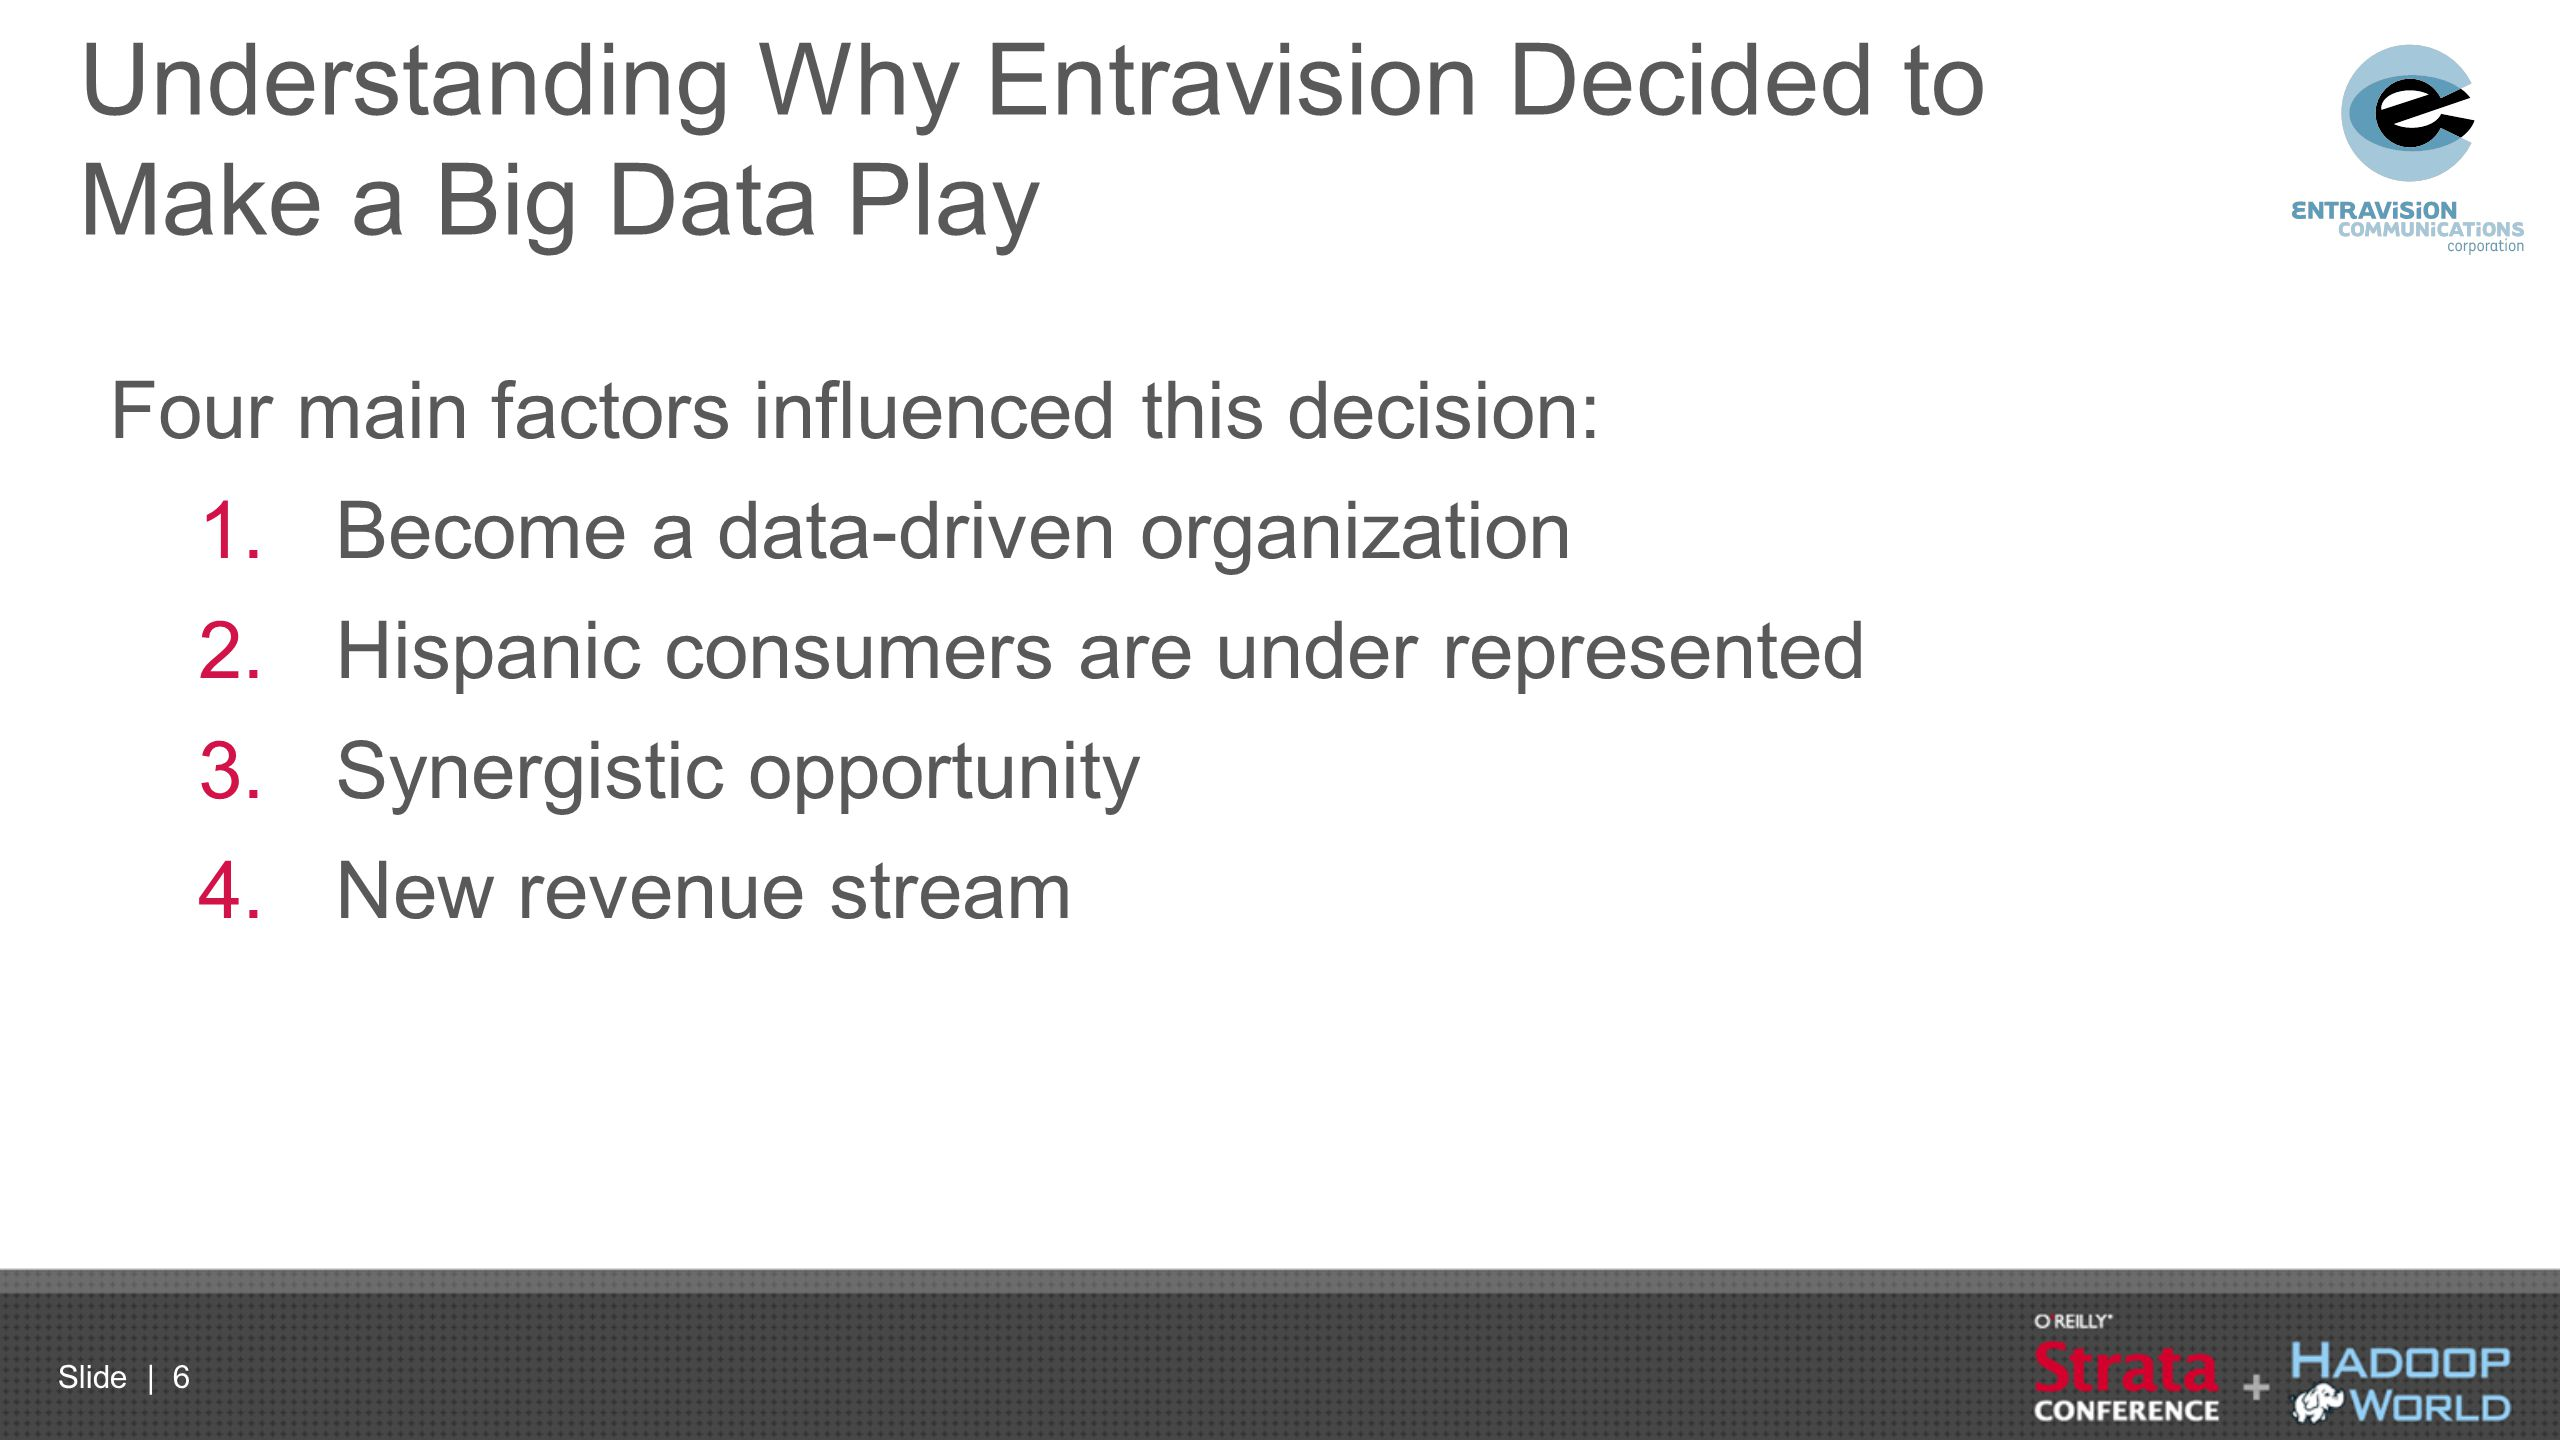 Understanding Why Entravision Decided to Make a Big Data Play